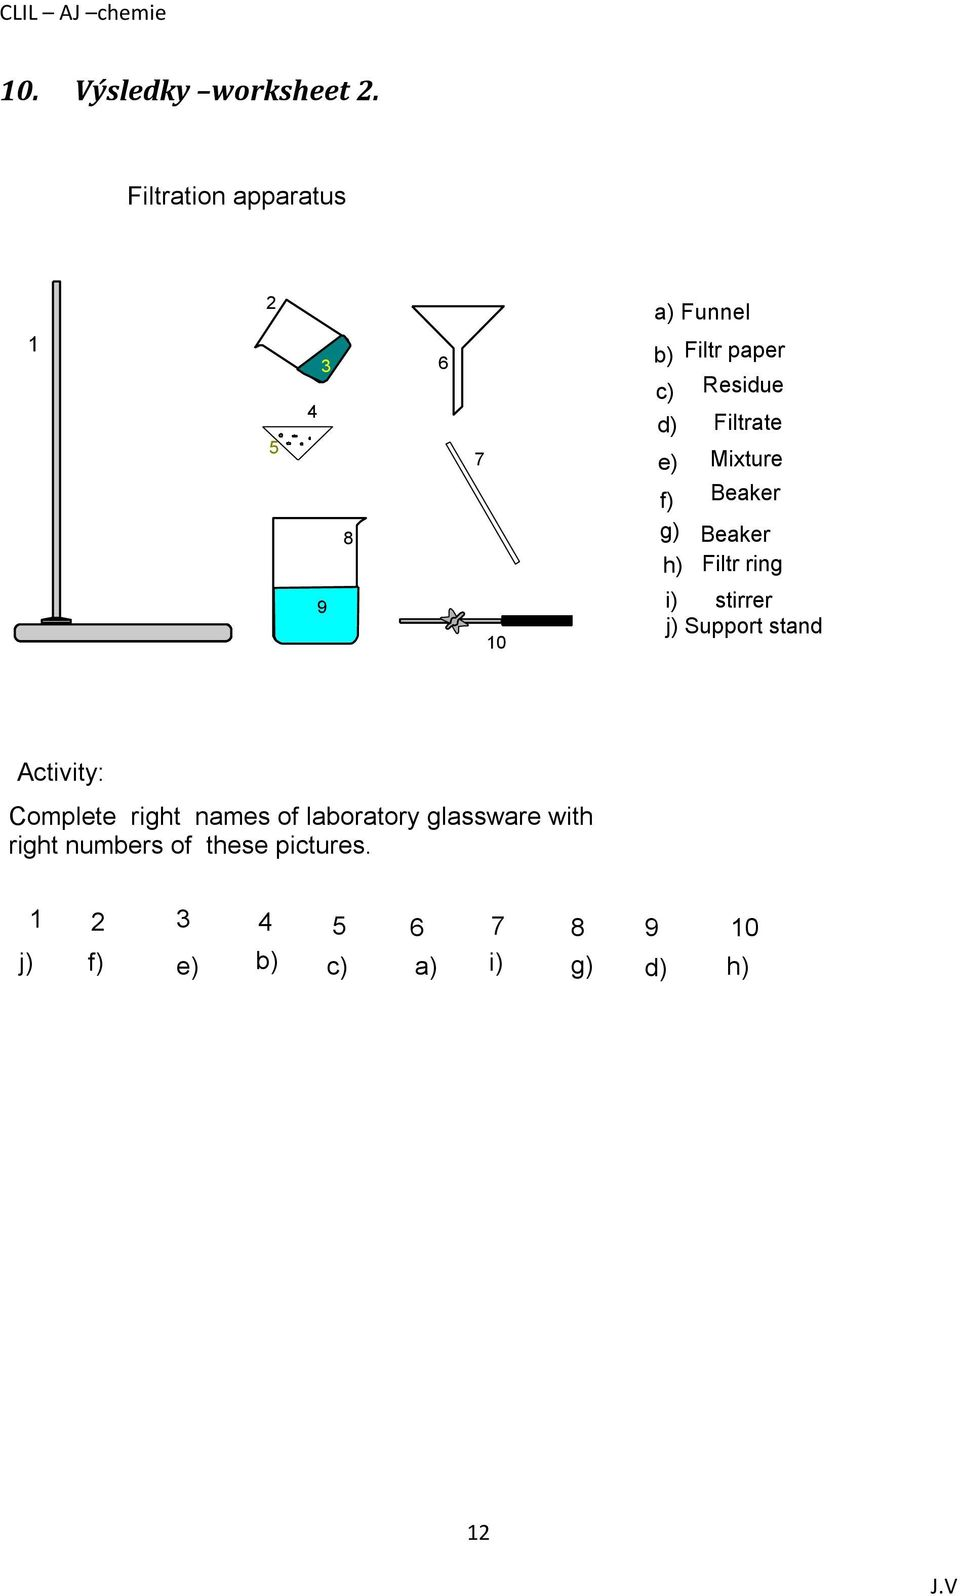 Filtrate e) Mixture f) Beaker g) Beaker h) Filtr ring i) stirrer j) Support stand